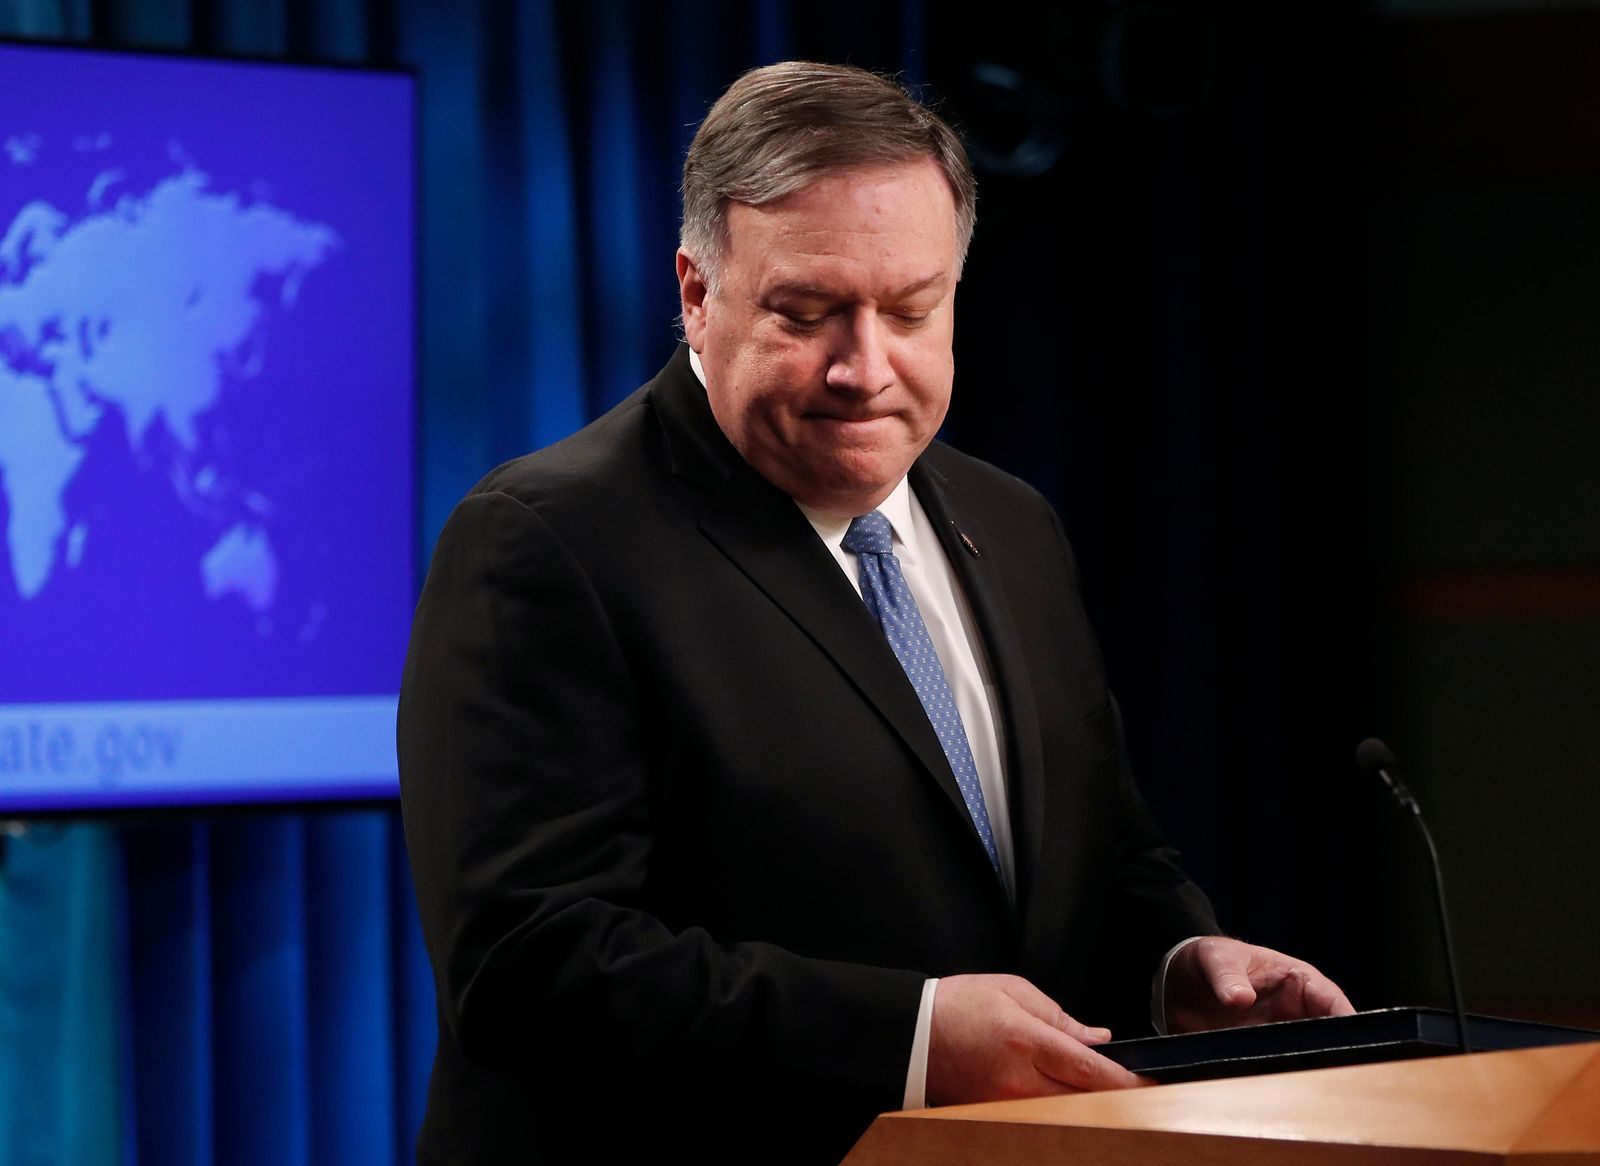 Secretary of State Mike Pompeo turns from the podium after speaking at a news conference at the State Department in Washington, Wednesday, April 17, 2019.(AP Photo/Pablo Martinez Monsivais)